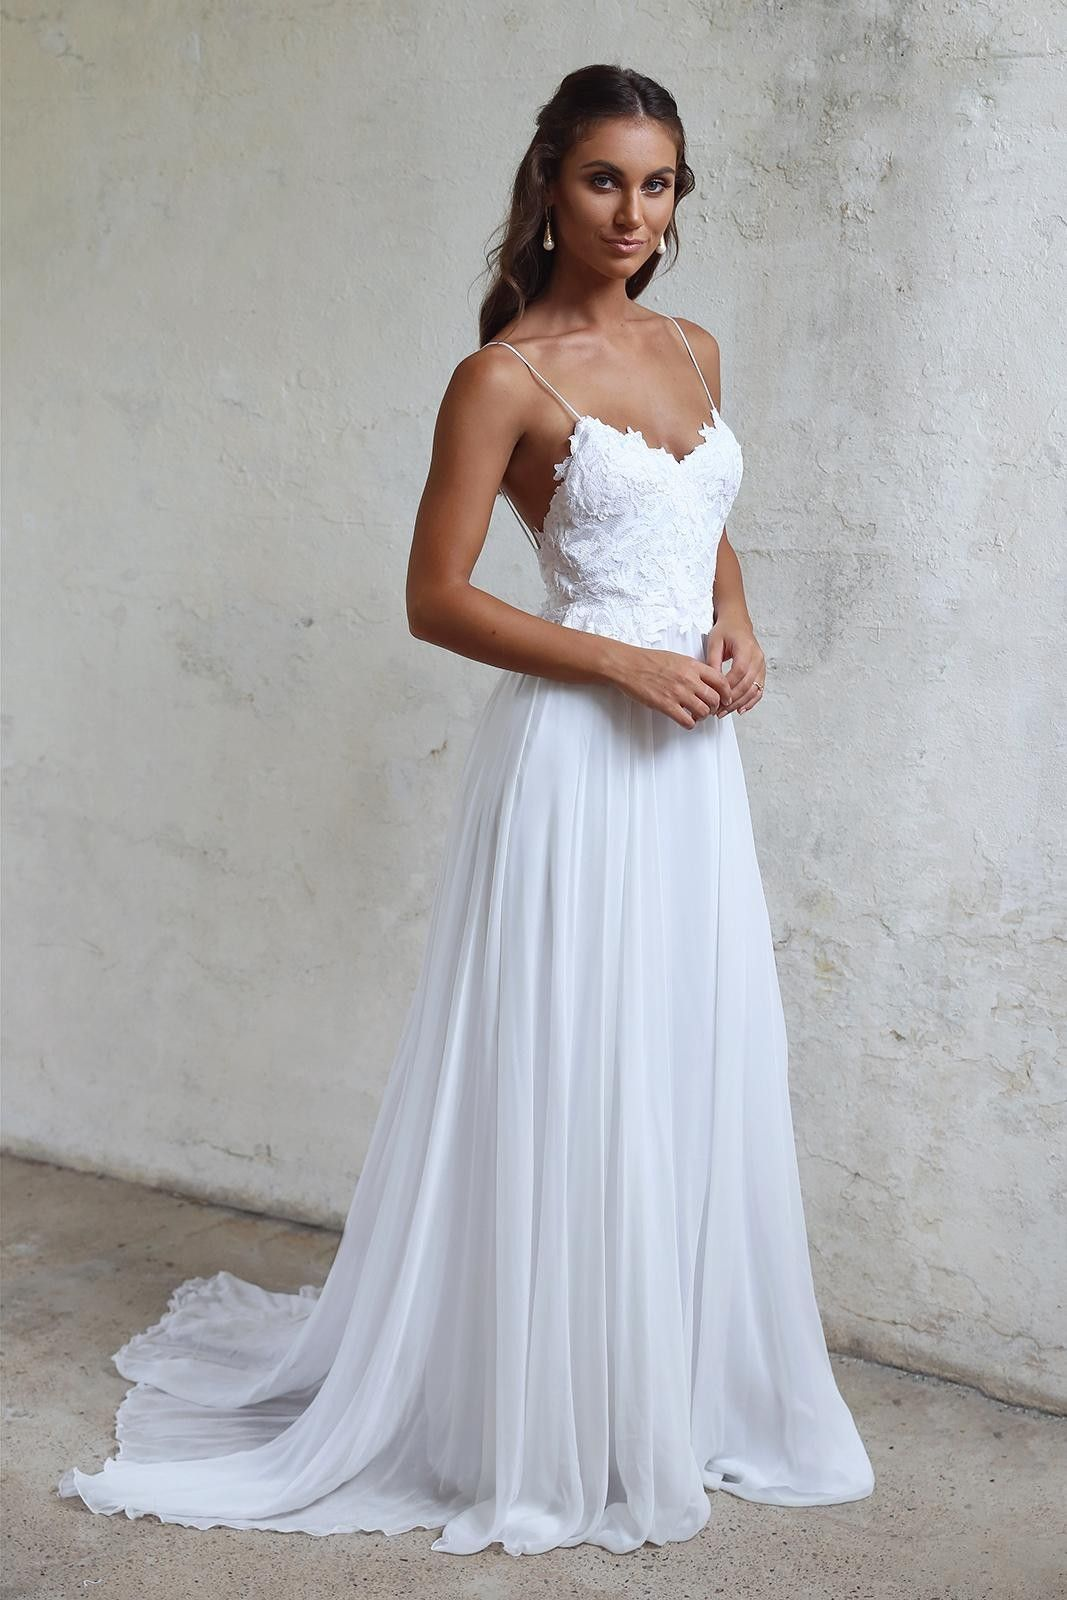 Simple A Line Spaghetti Straps Open Back Summer Wedding Dress - Spaghetti Strap Wedding Dresses